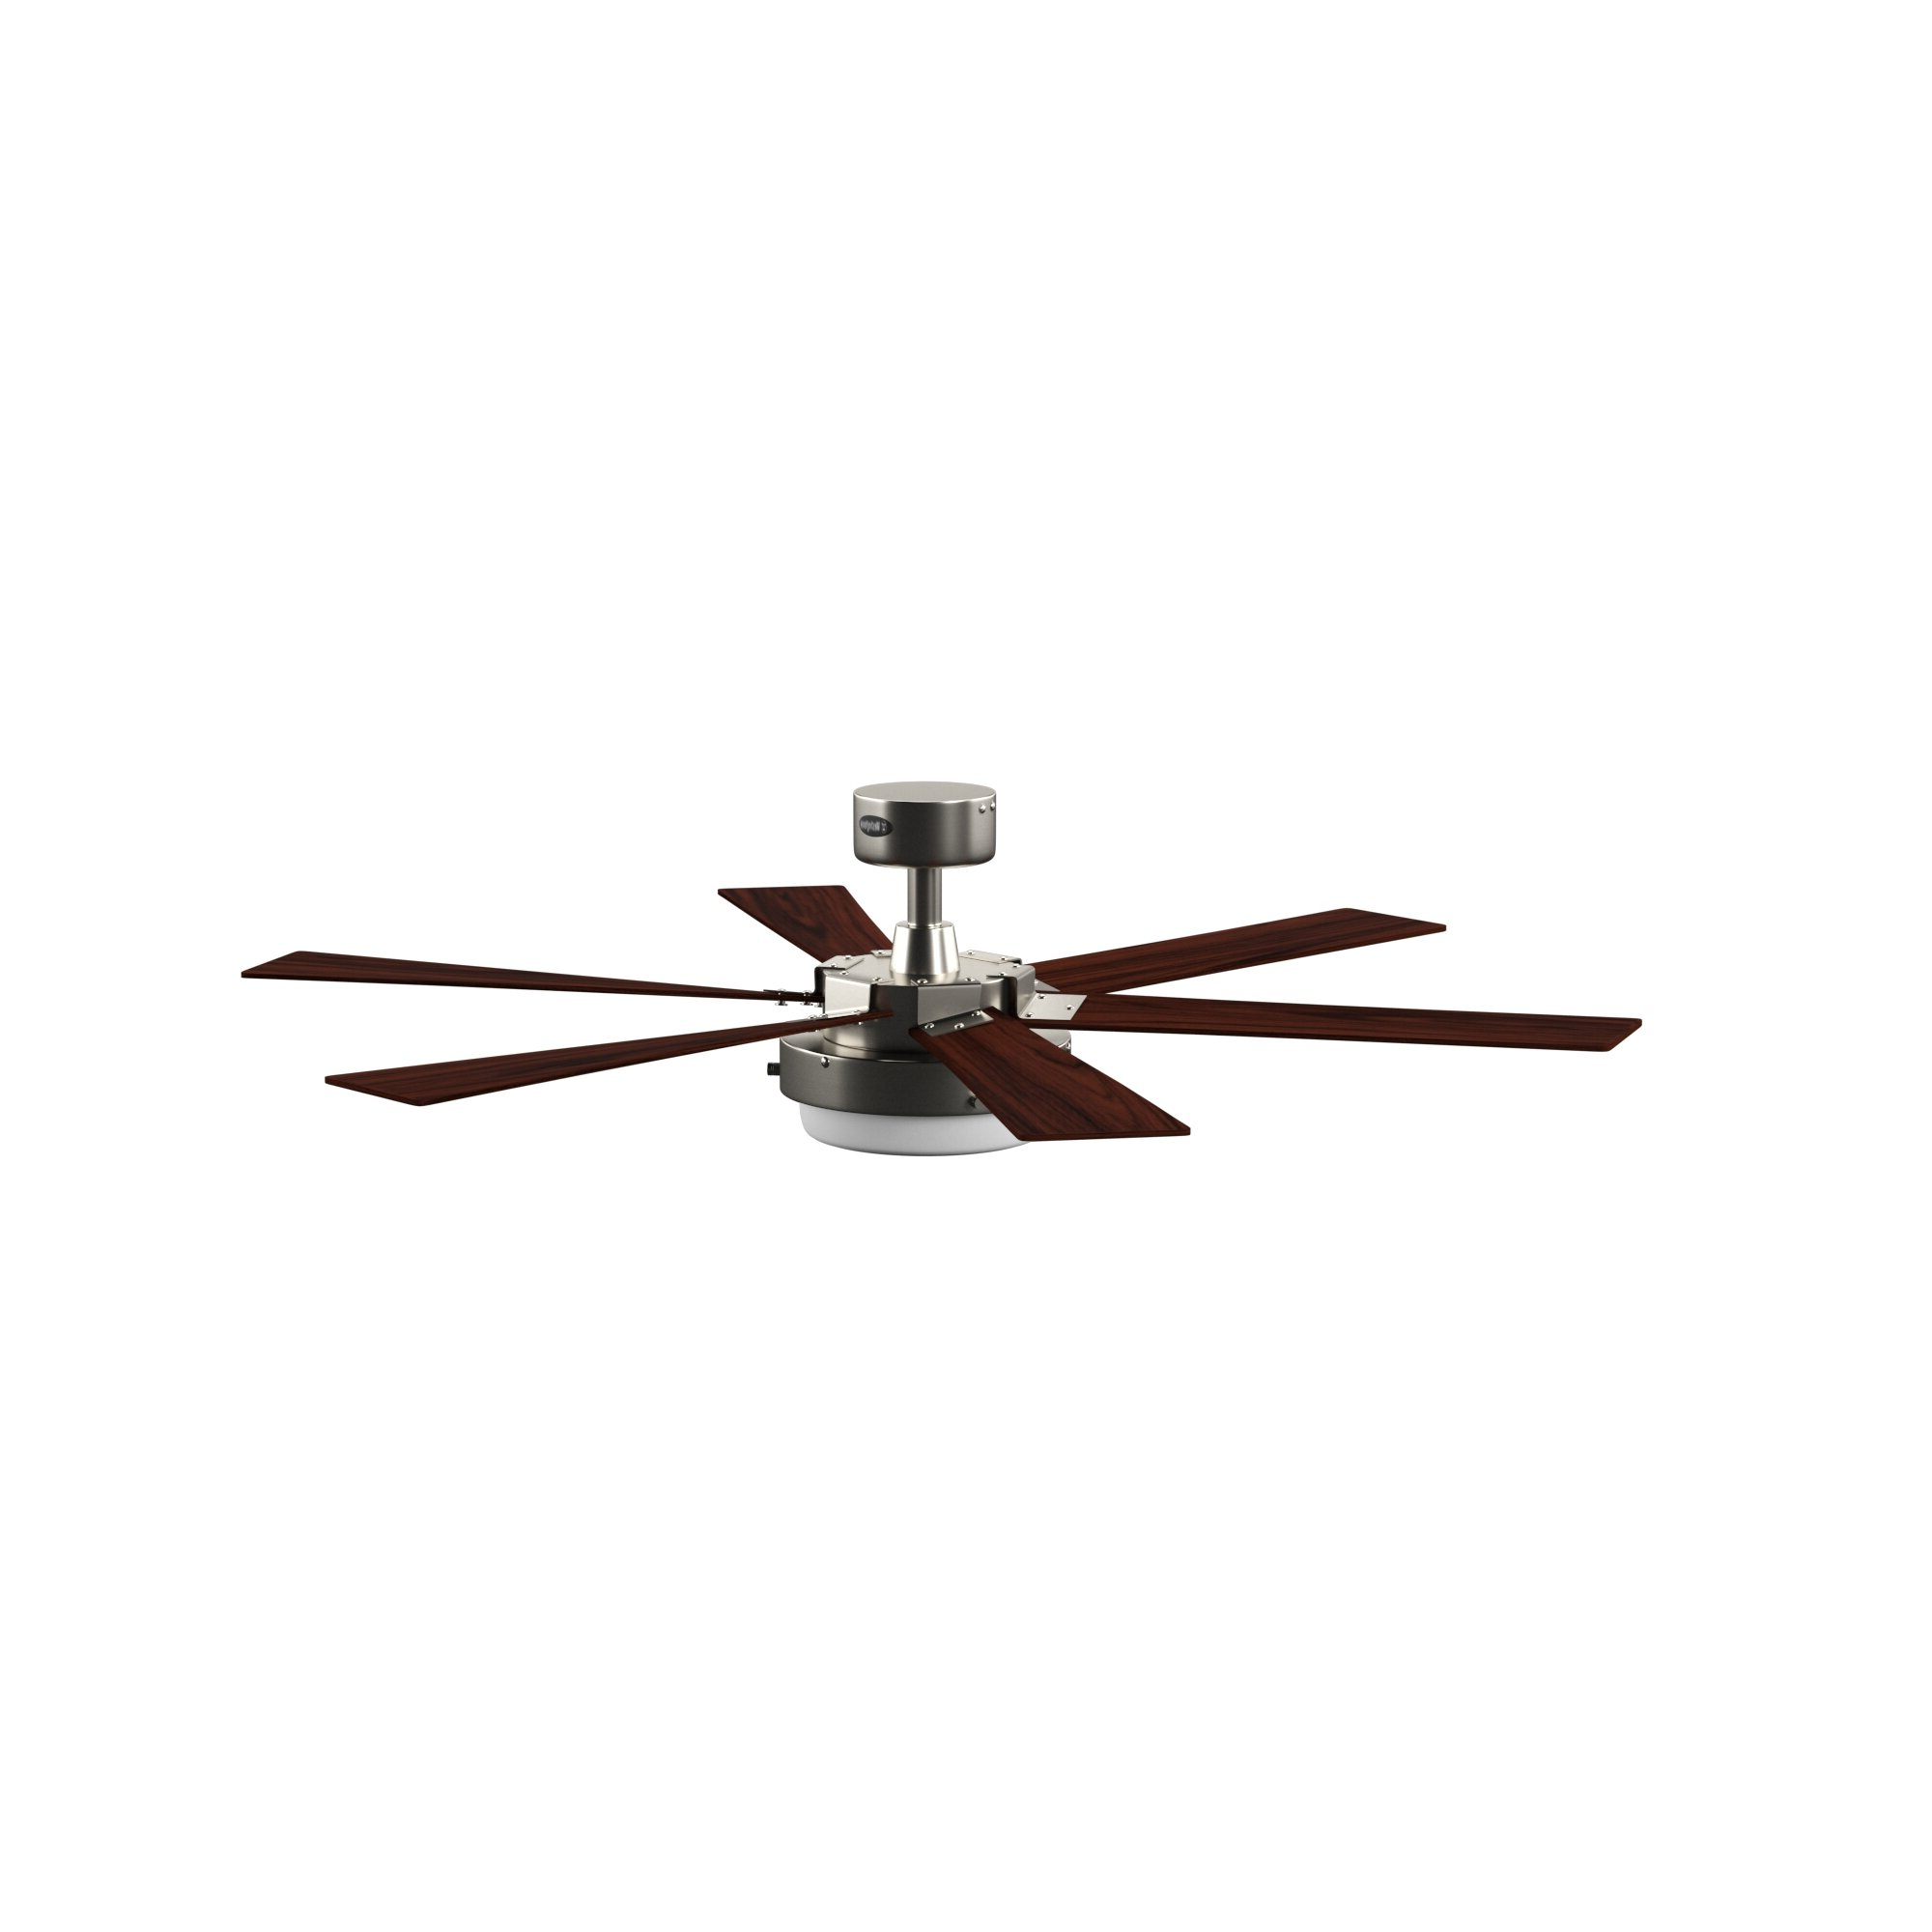 2020 Modern Extremely Large Room Ceiling Fans (View 1 of 20)